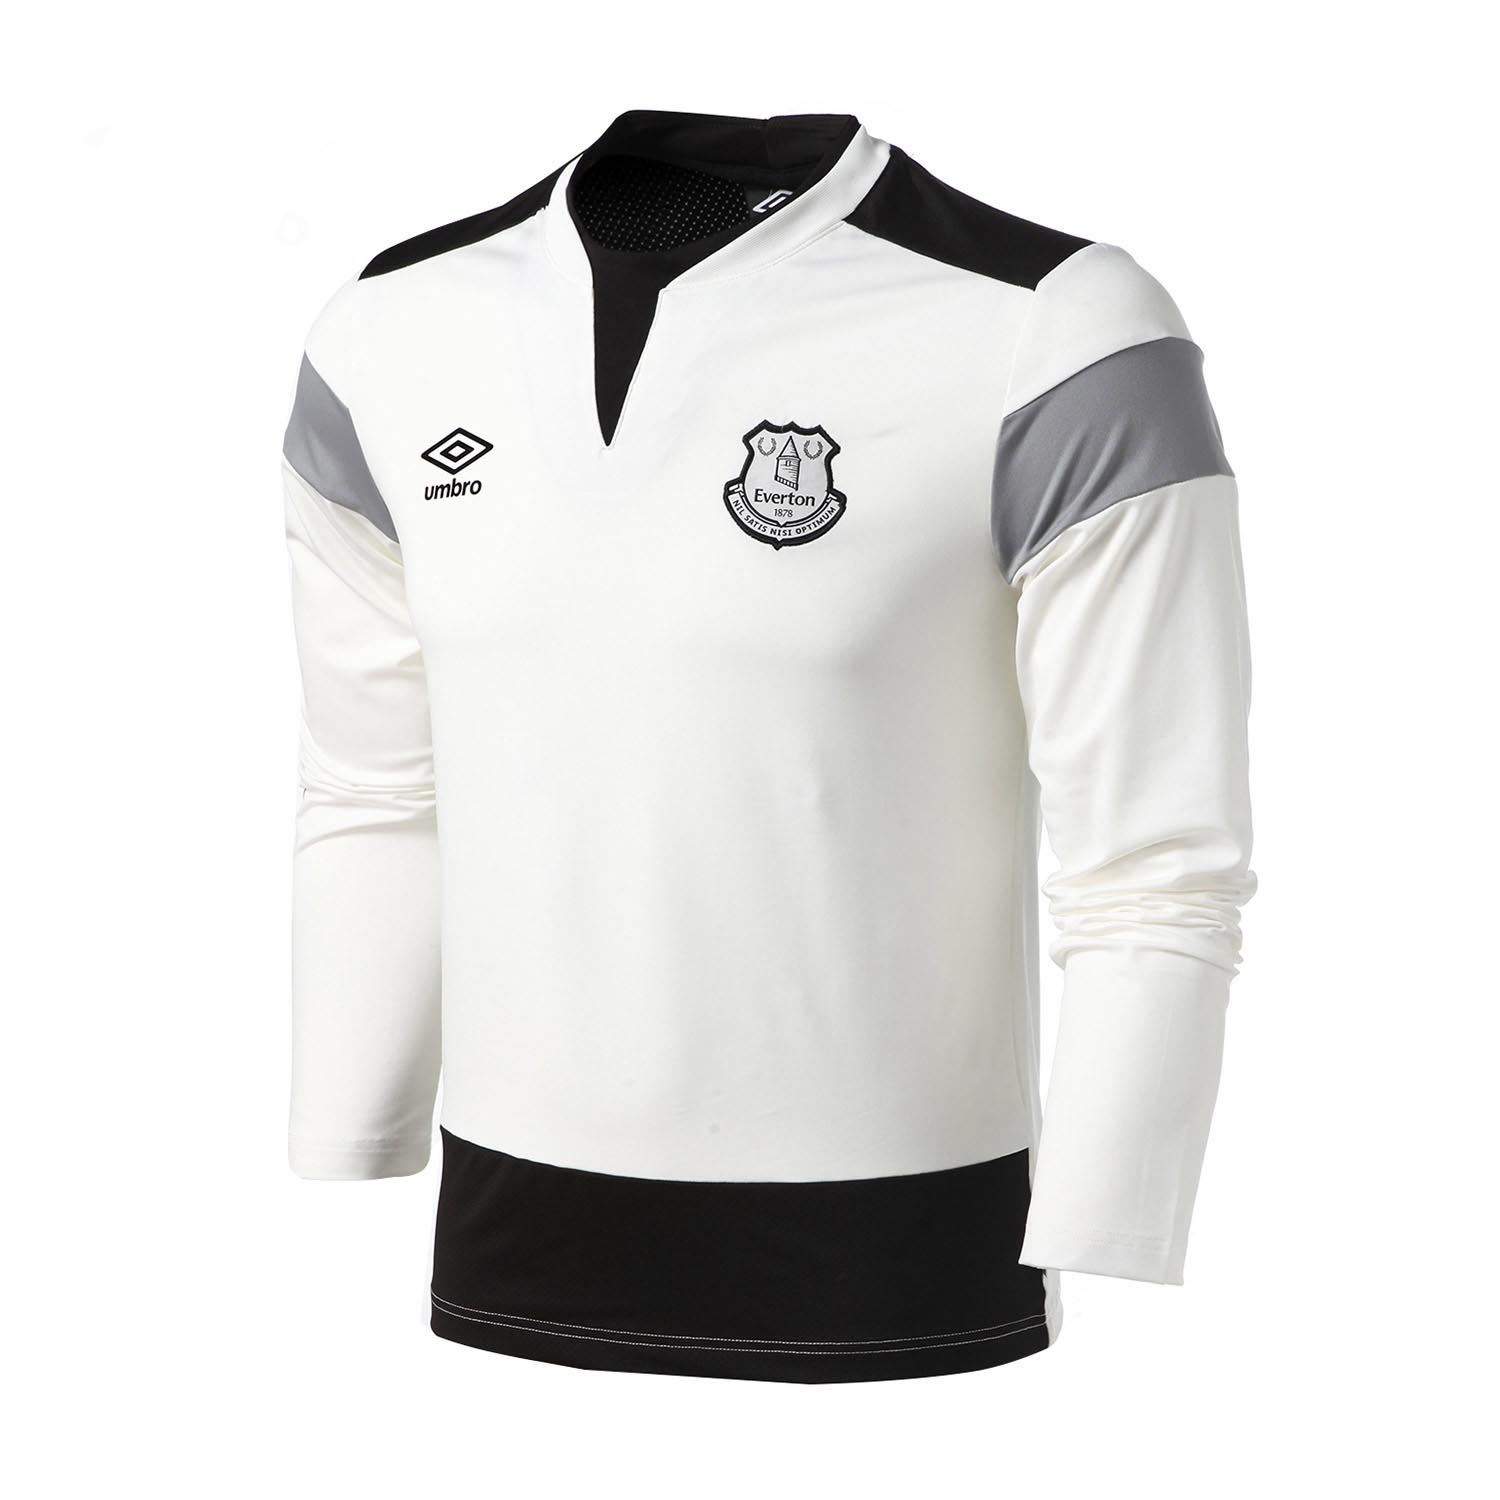 Umbro Men Everton Long Sleeved shirt Running Shirt Men Soccer Jerseys T-shirts Tops Slim Fit Shirt Quick Dry Sportswear Ucb63019 органайзер для хранения носков sima land цвет белый на 20 пар